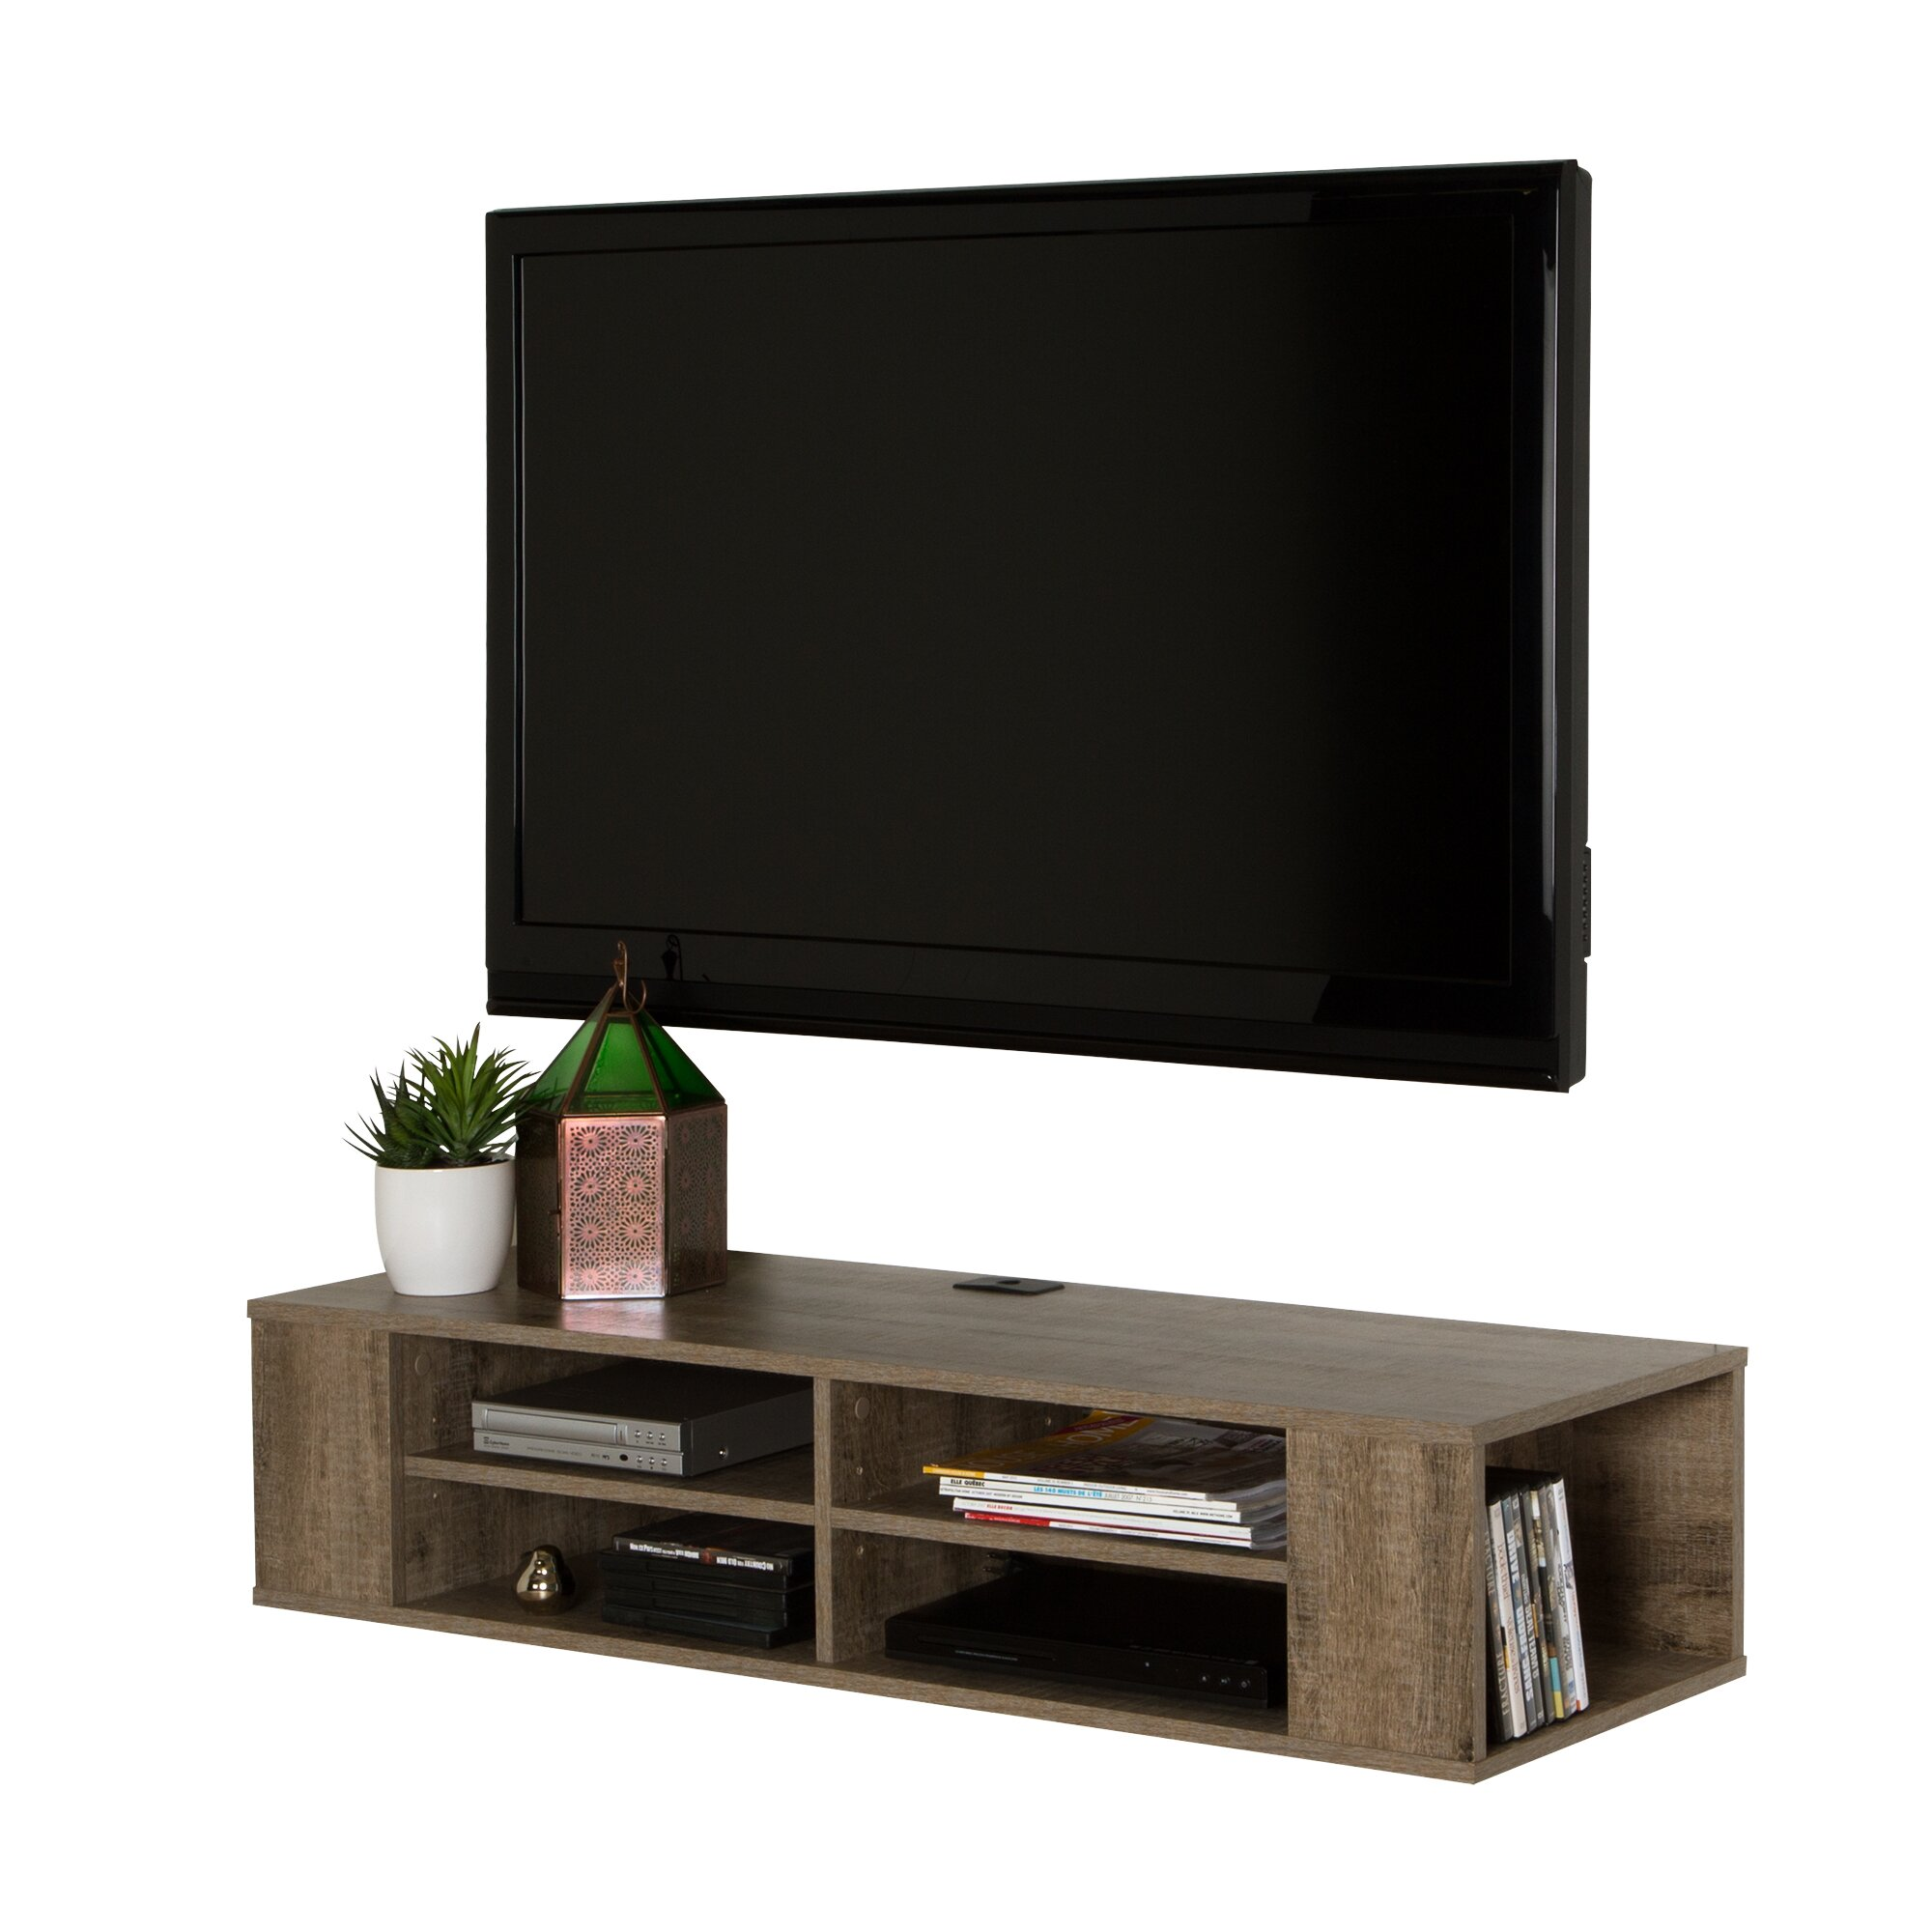 Perfect Astonishing The Chic South Shore City Life Tv Stand Game Ideas